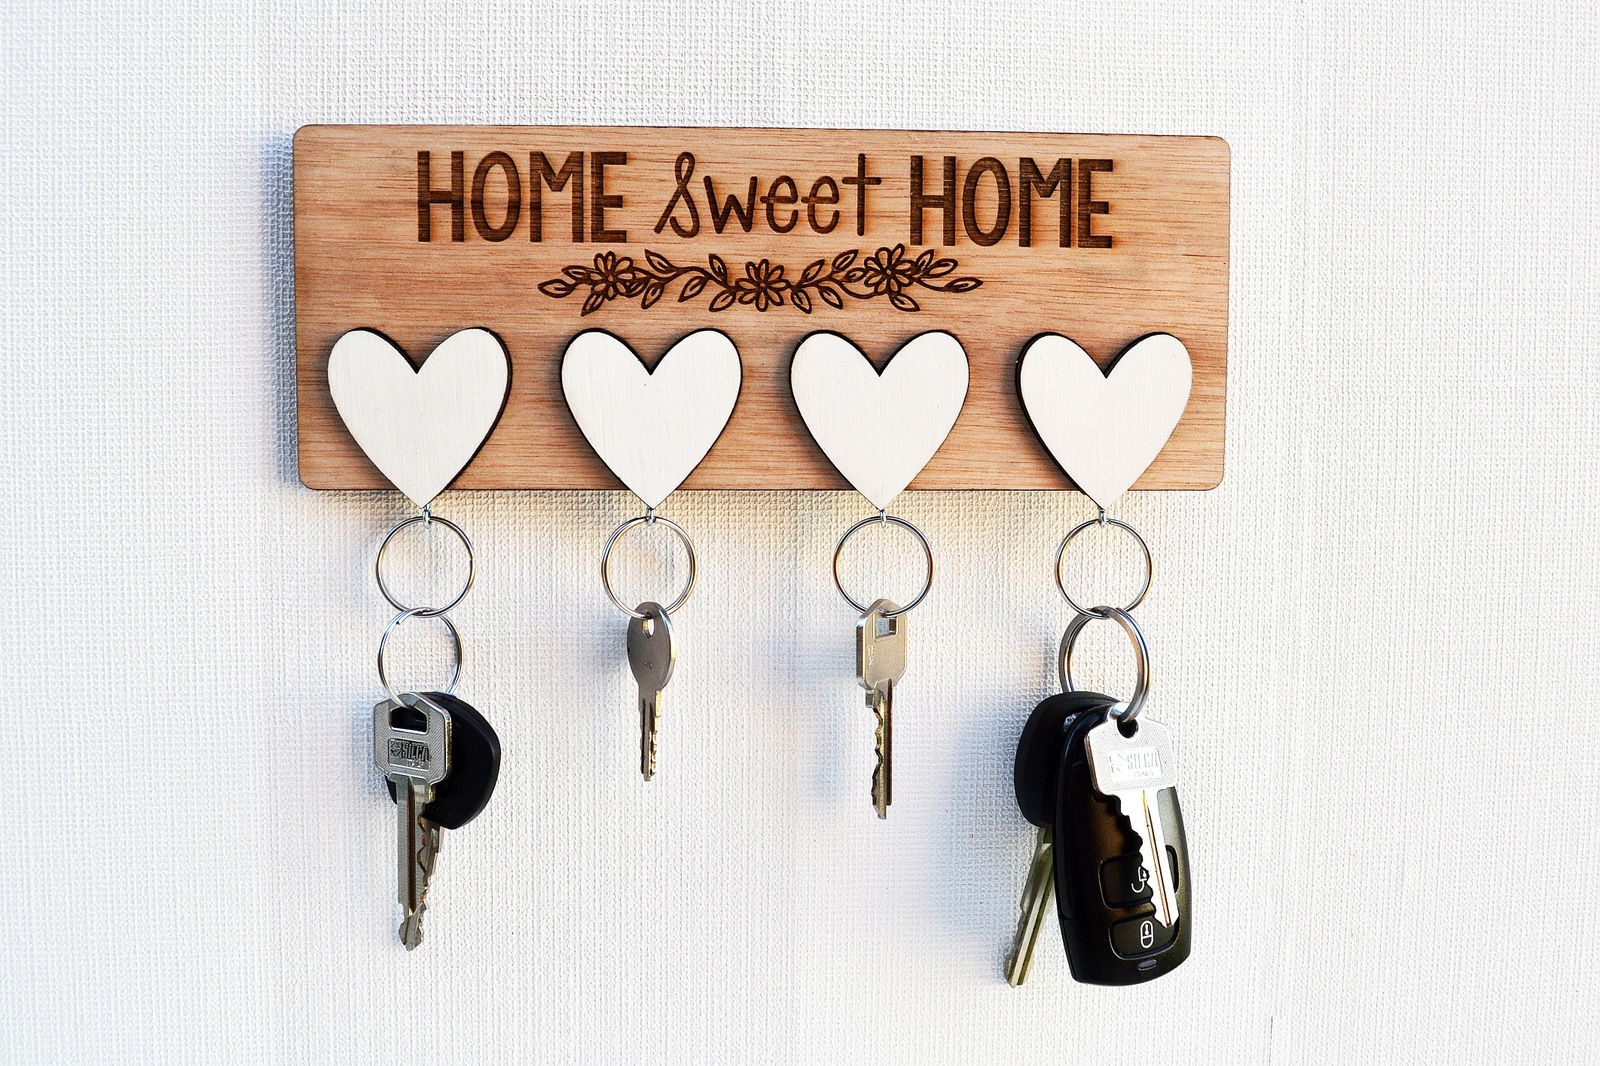 Wall Key Holder Diy Google Search Trays Diy Home Decor